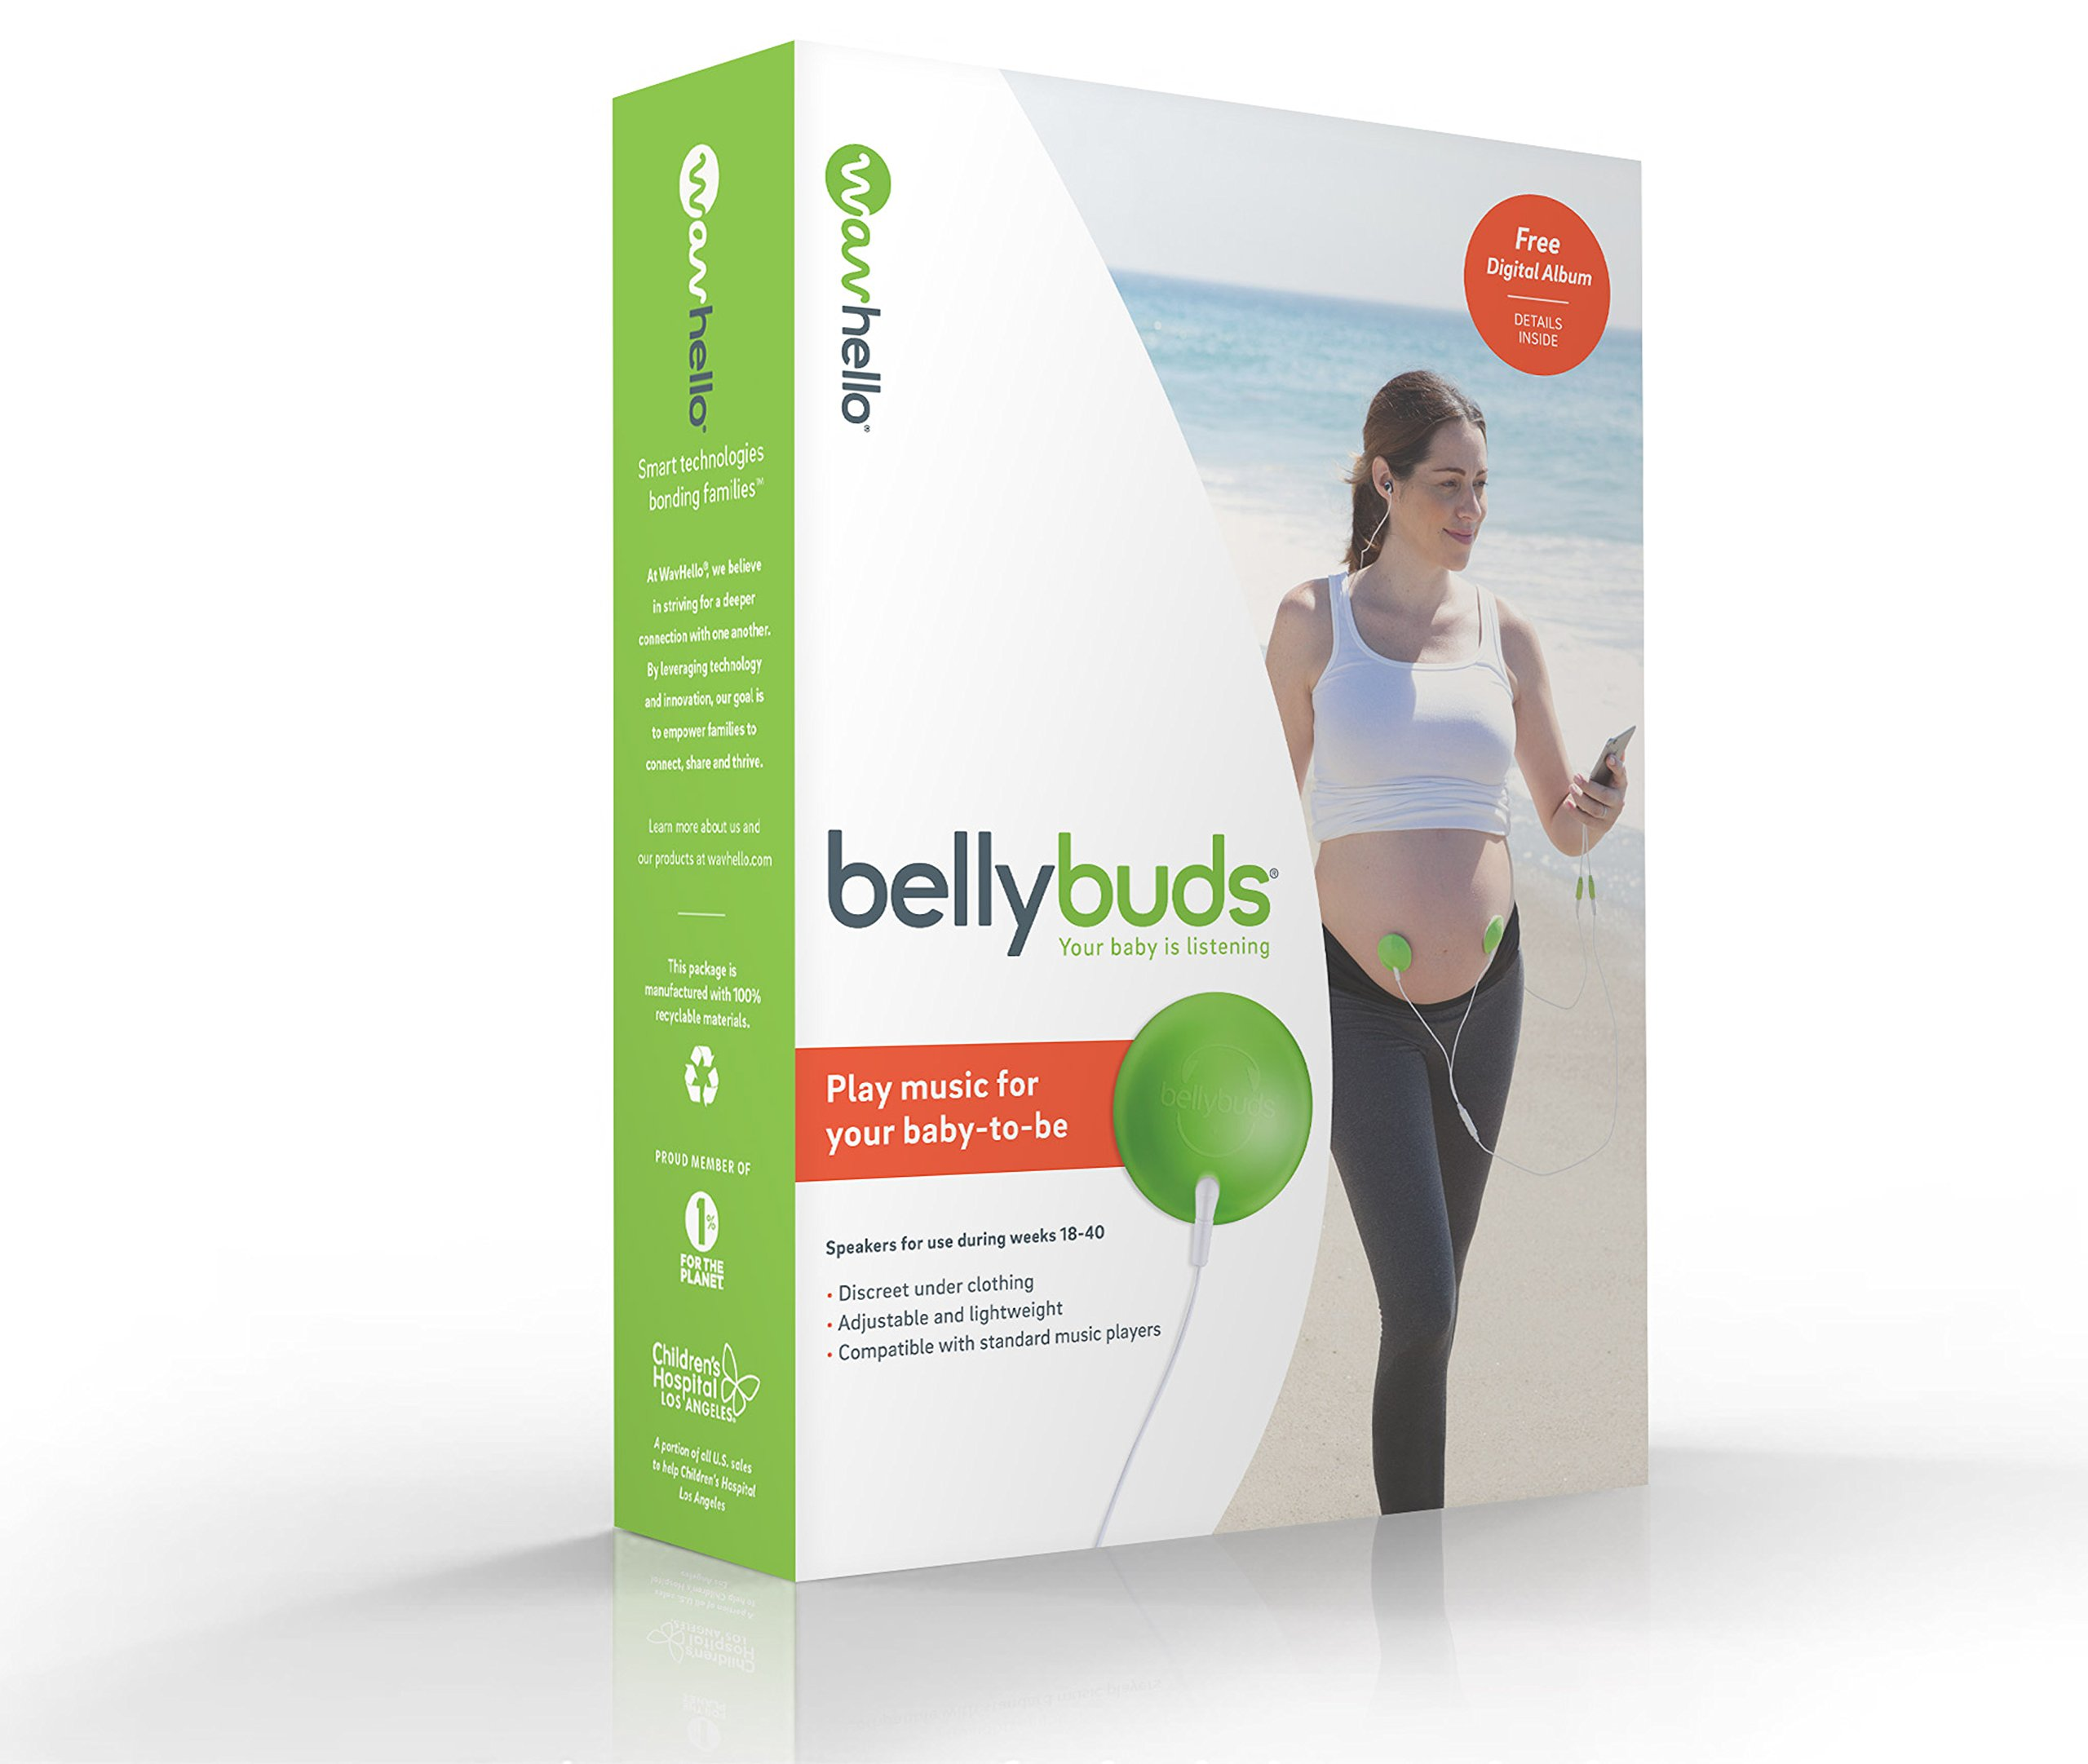 BellyBuds by WavHello, Pregnancy Baby-Bump Headphones | Prenatal Bellyphones Play Music, Sound and Voices to the Womb - 5th Generation